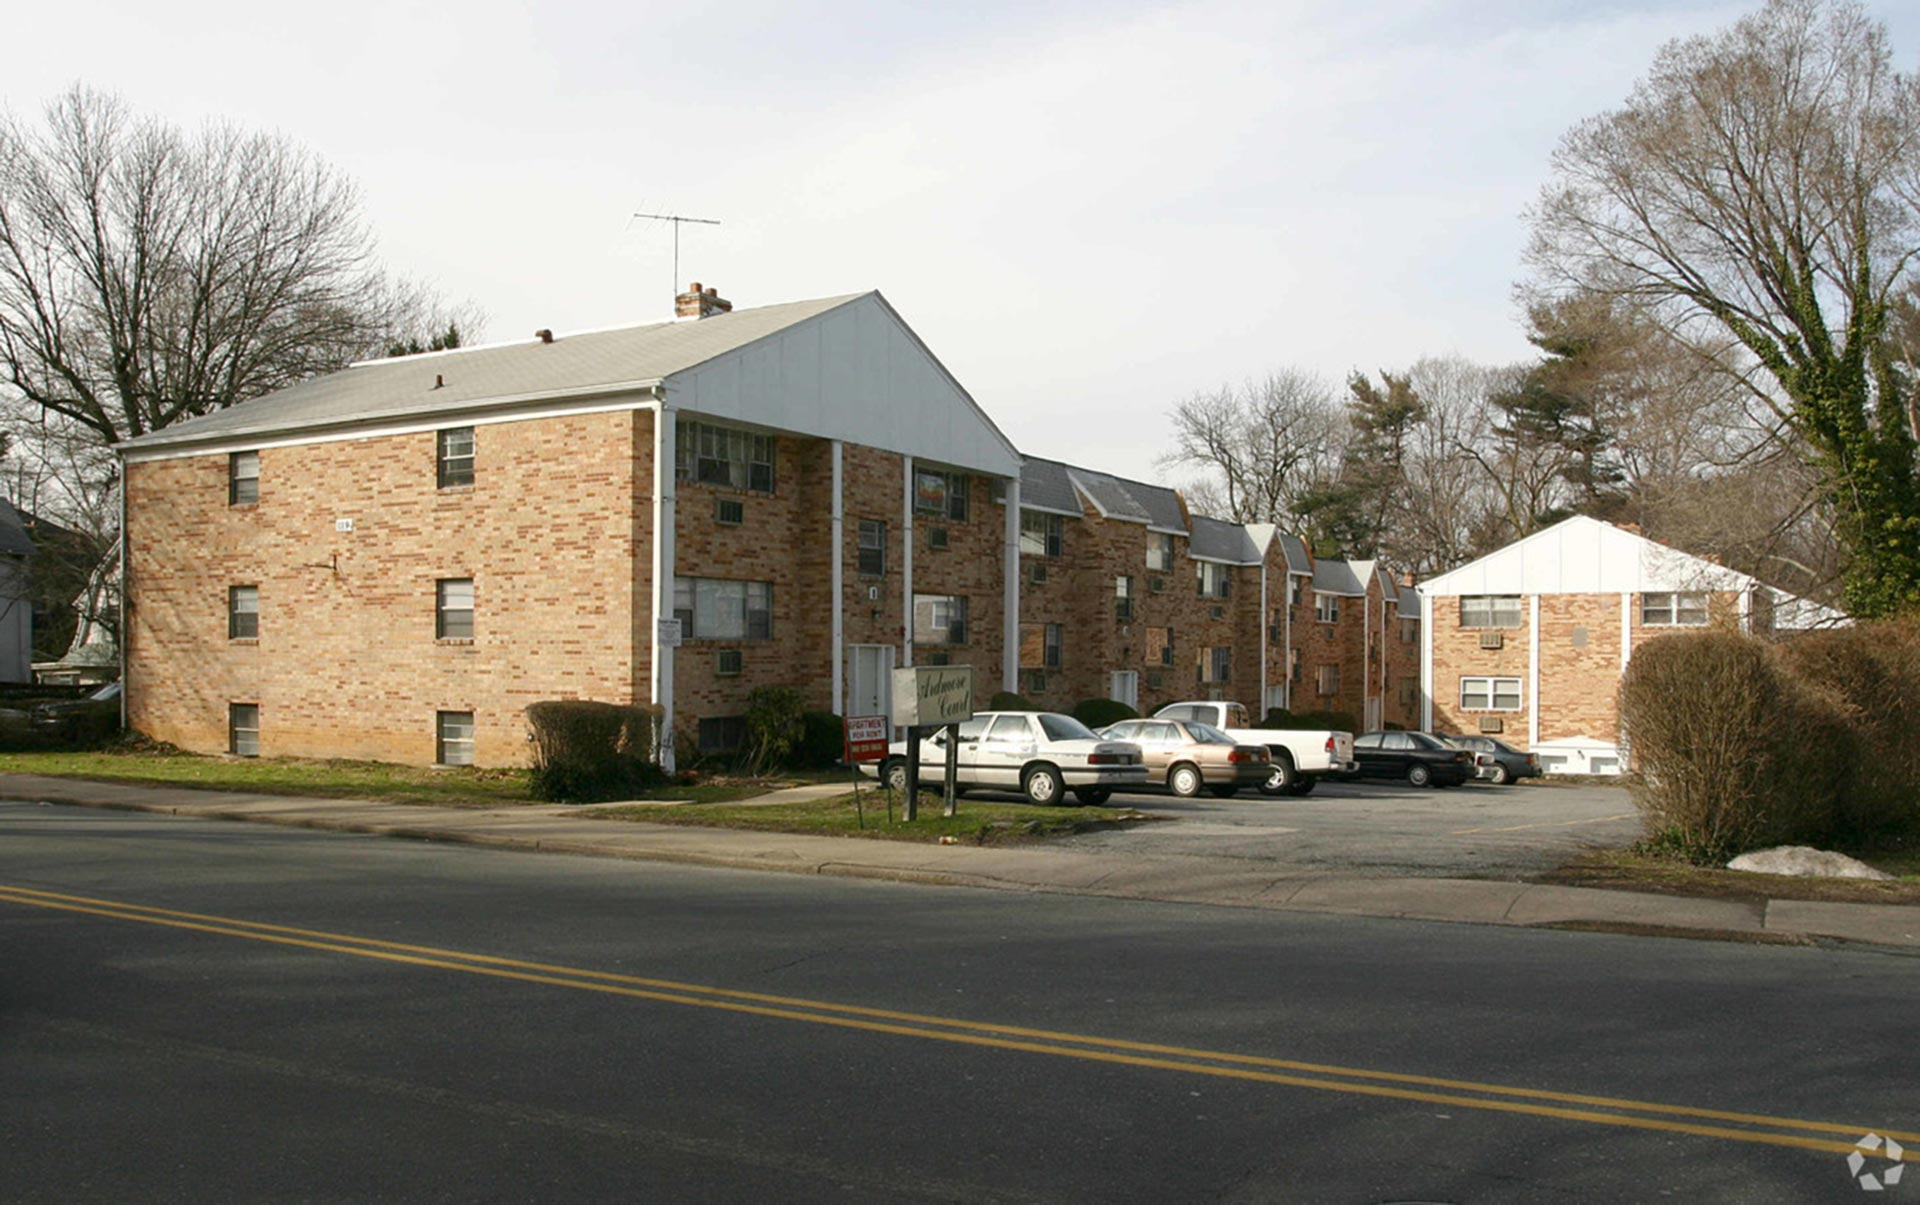 Ardmore Court building exterior from the road